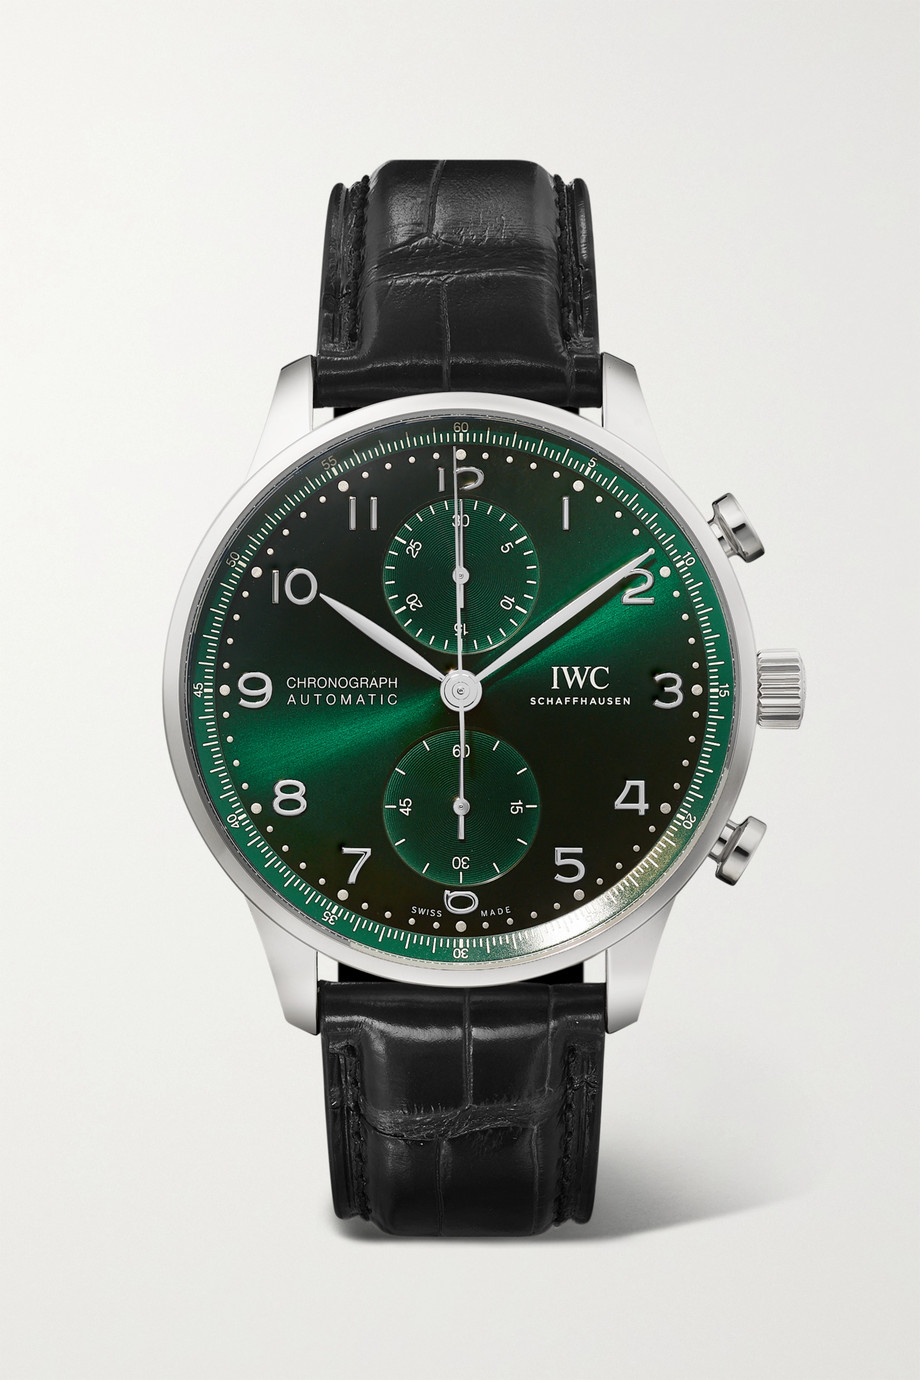 IWC SCHAFFHAUSEN Montre en acier inoxydable à bracelet en alligator Portugieser Automatic Chronograph 41 mm